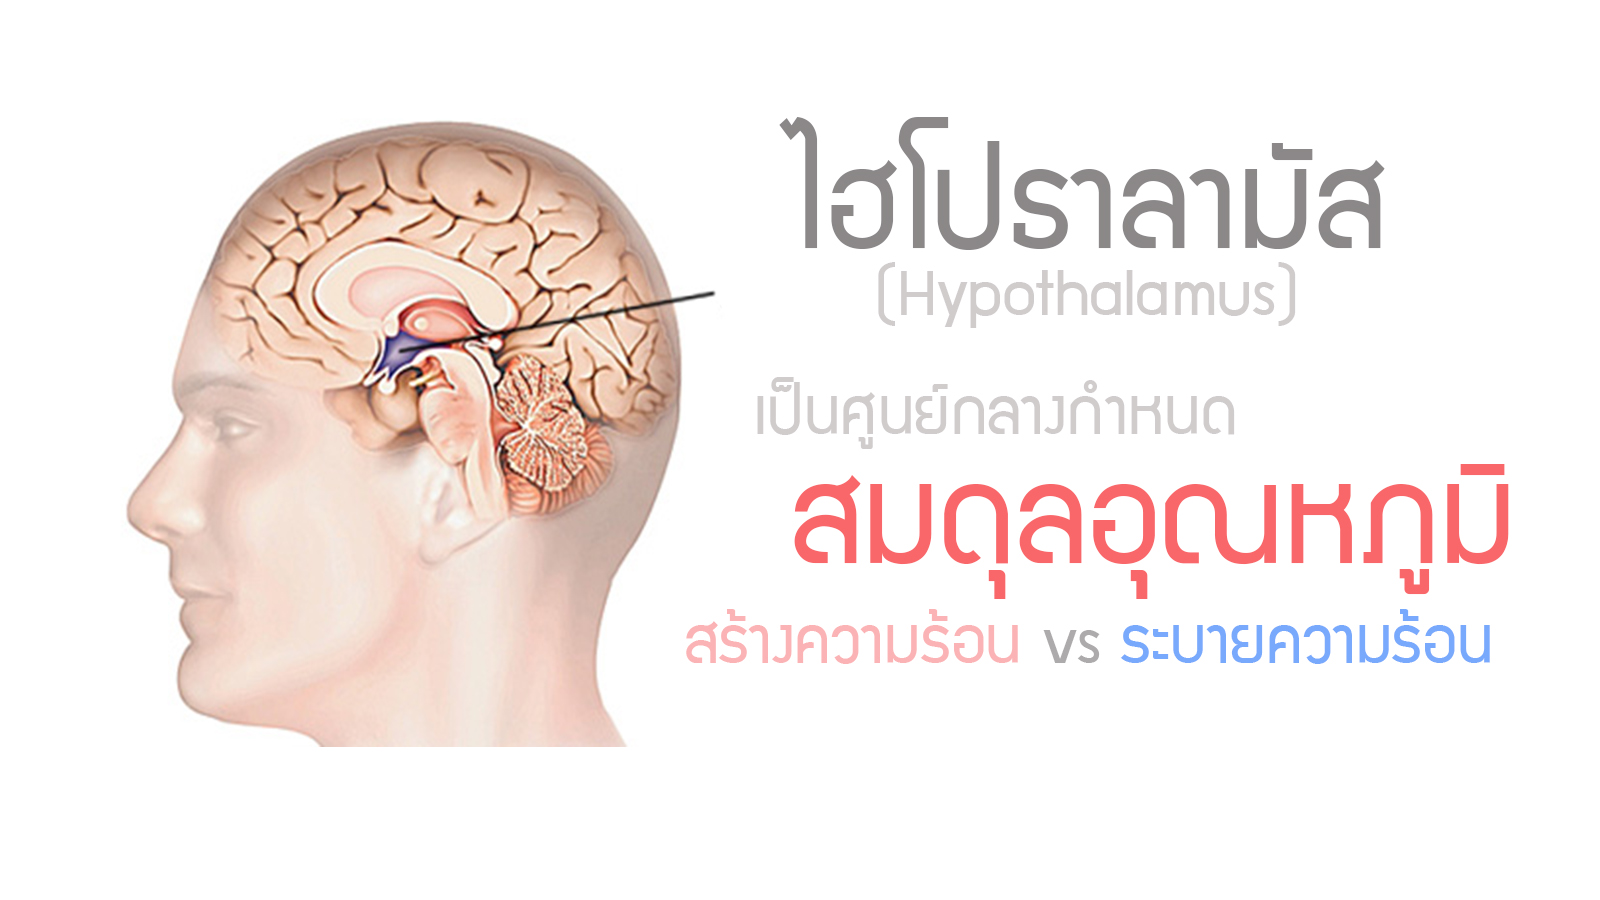 Fever hypothalamus text